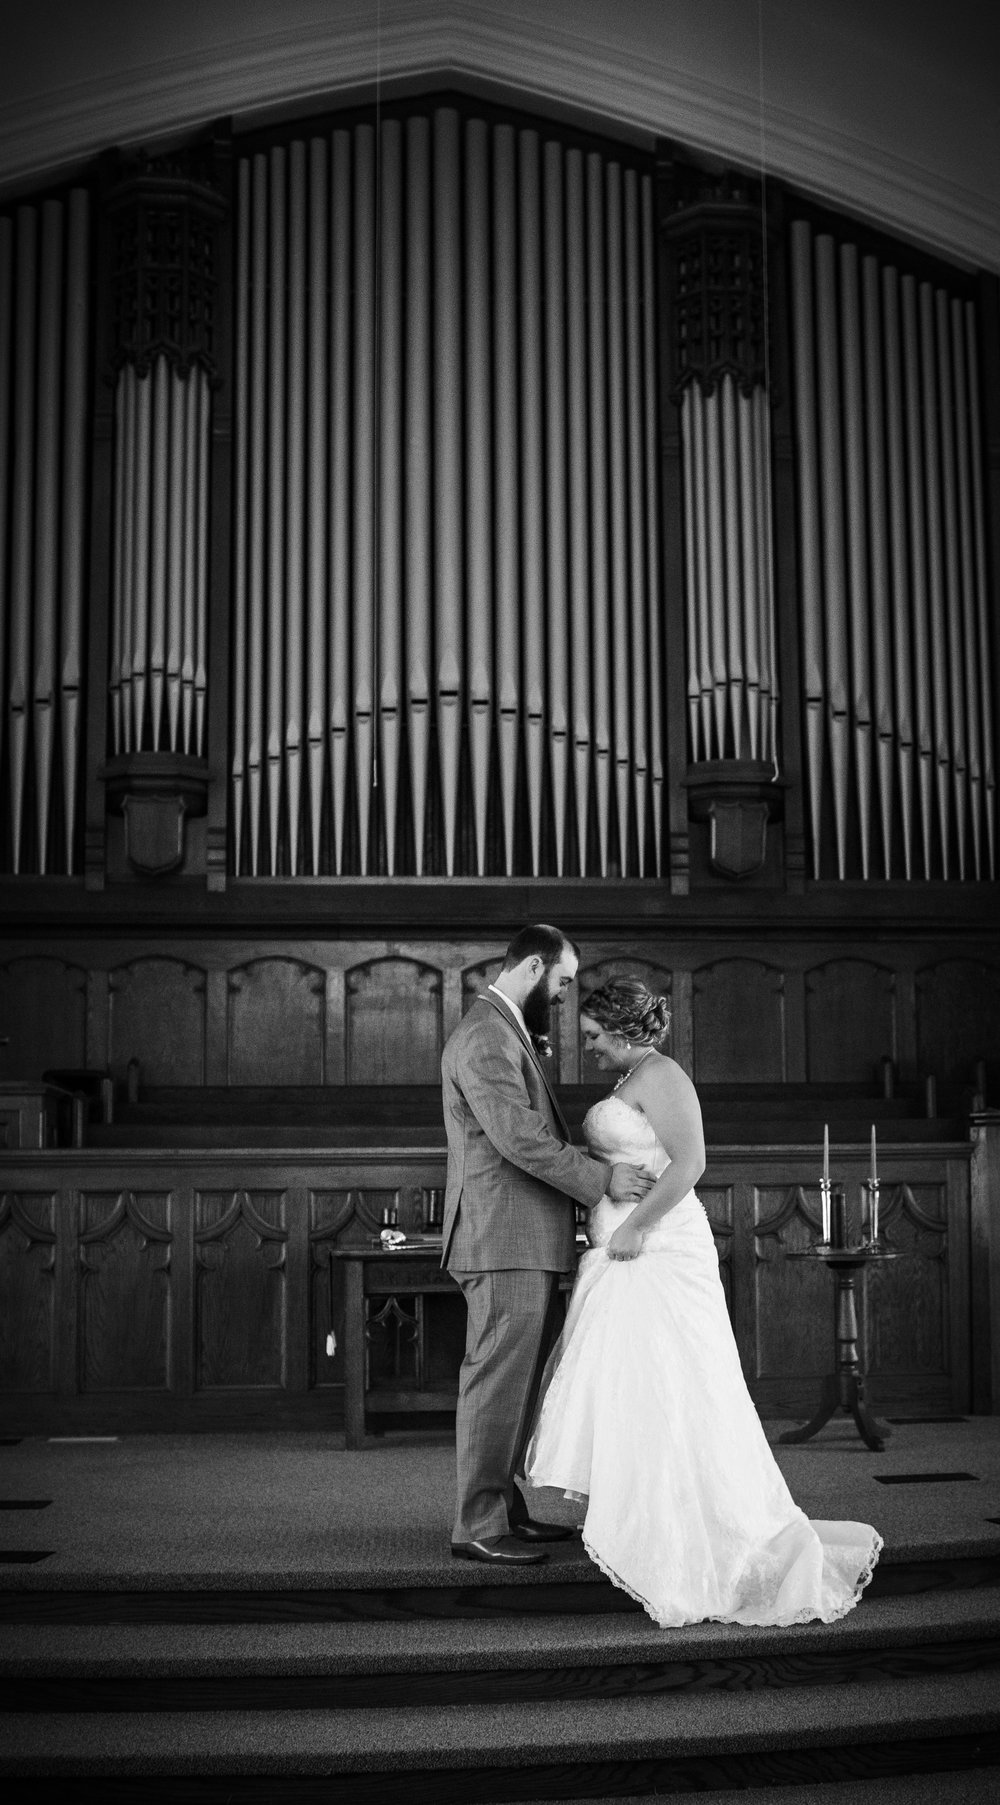 Zibell Spring Wedding, Bride and Groom, Powerful, Connected, Exploration, Laura Duggleby Photography -76.JPG